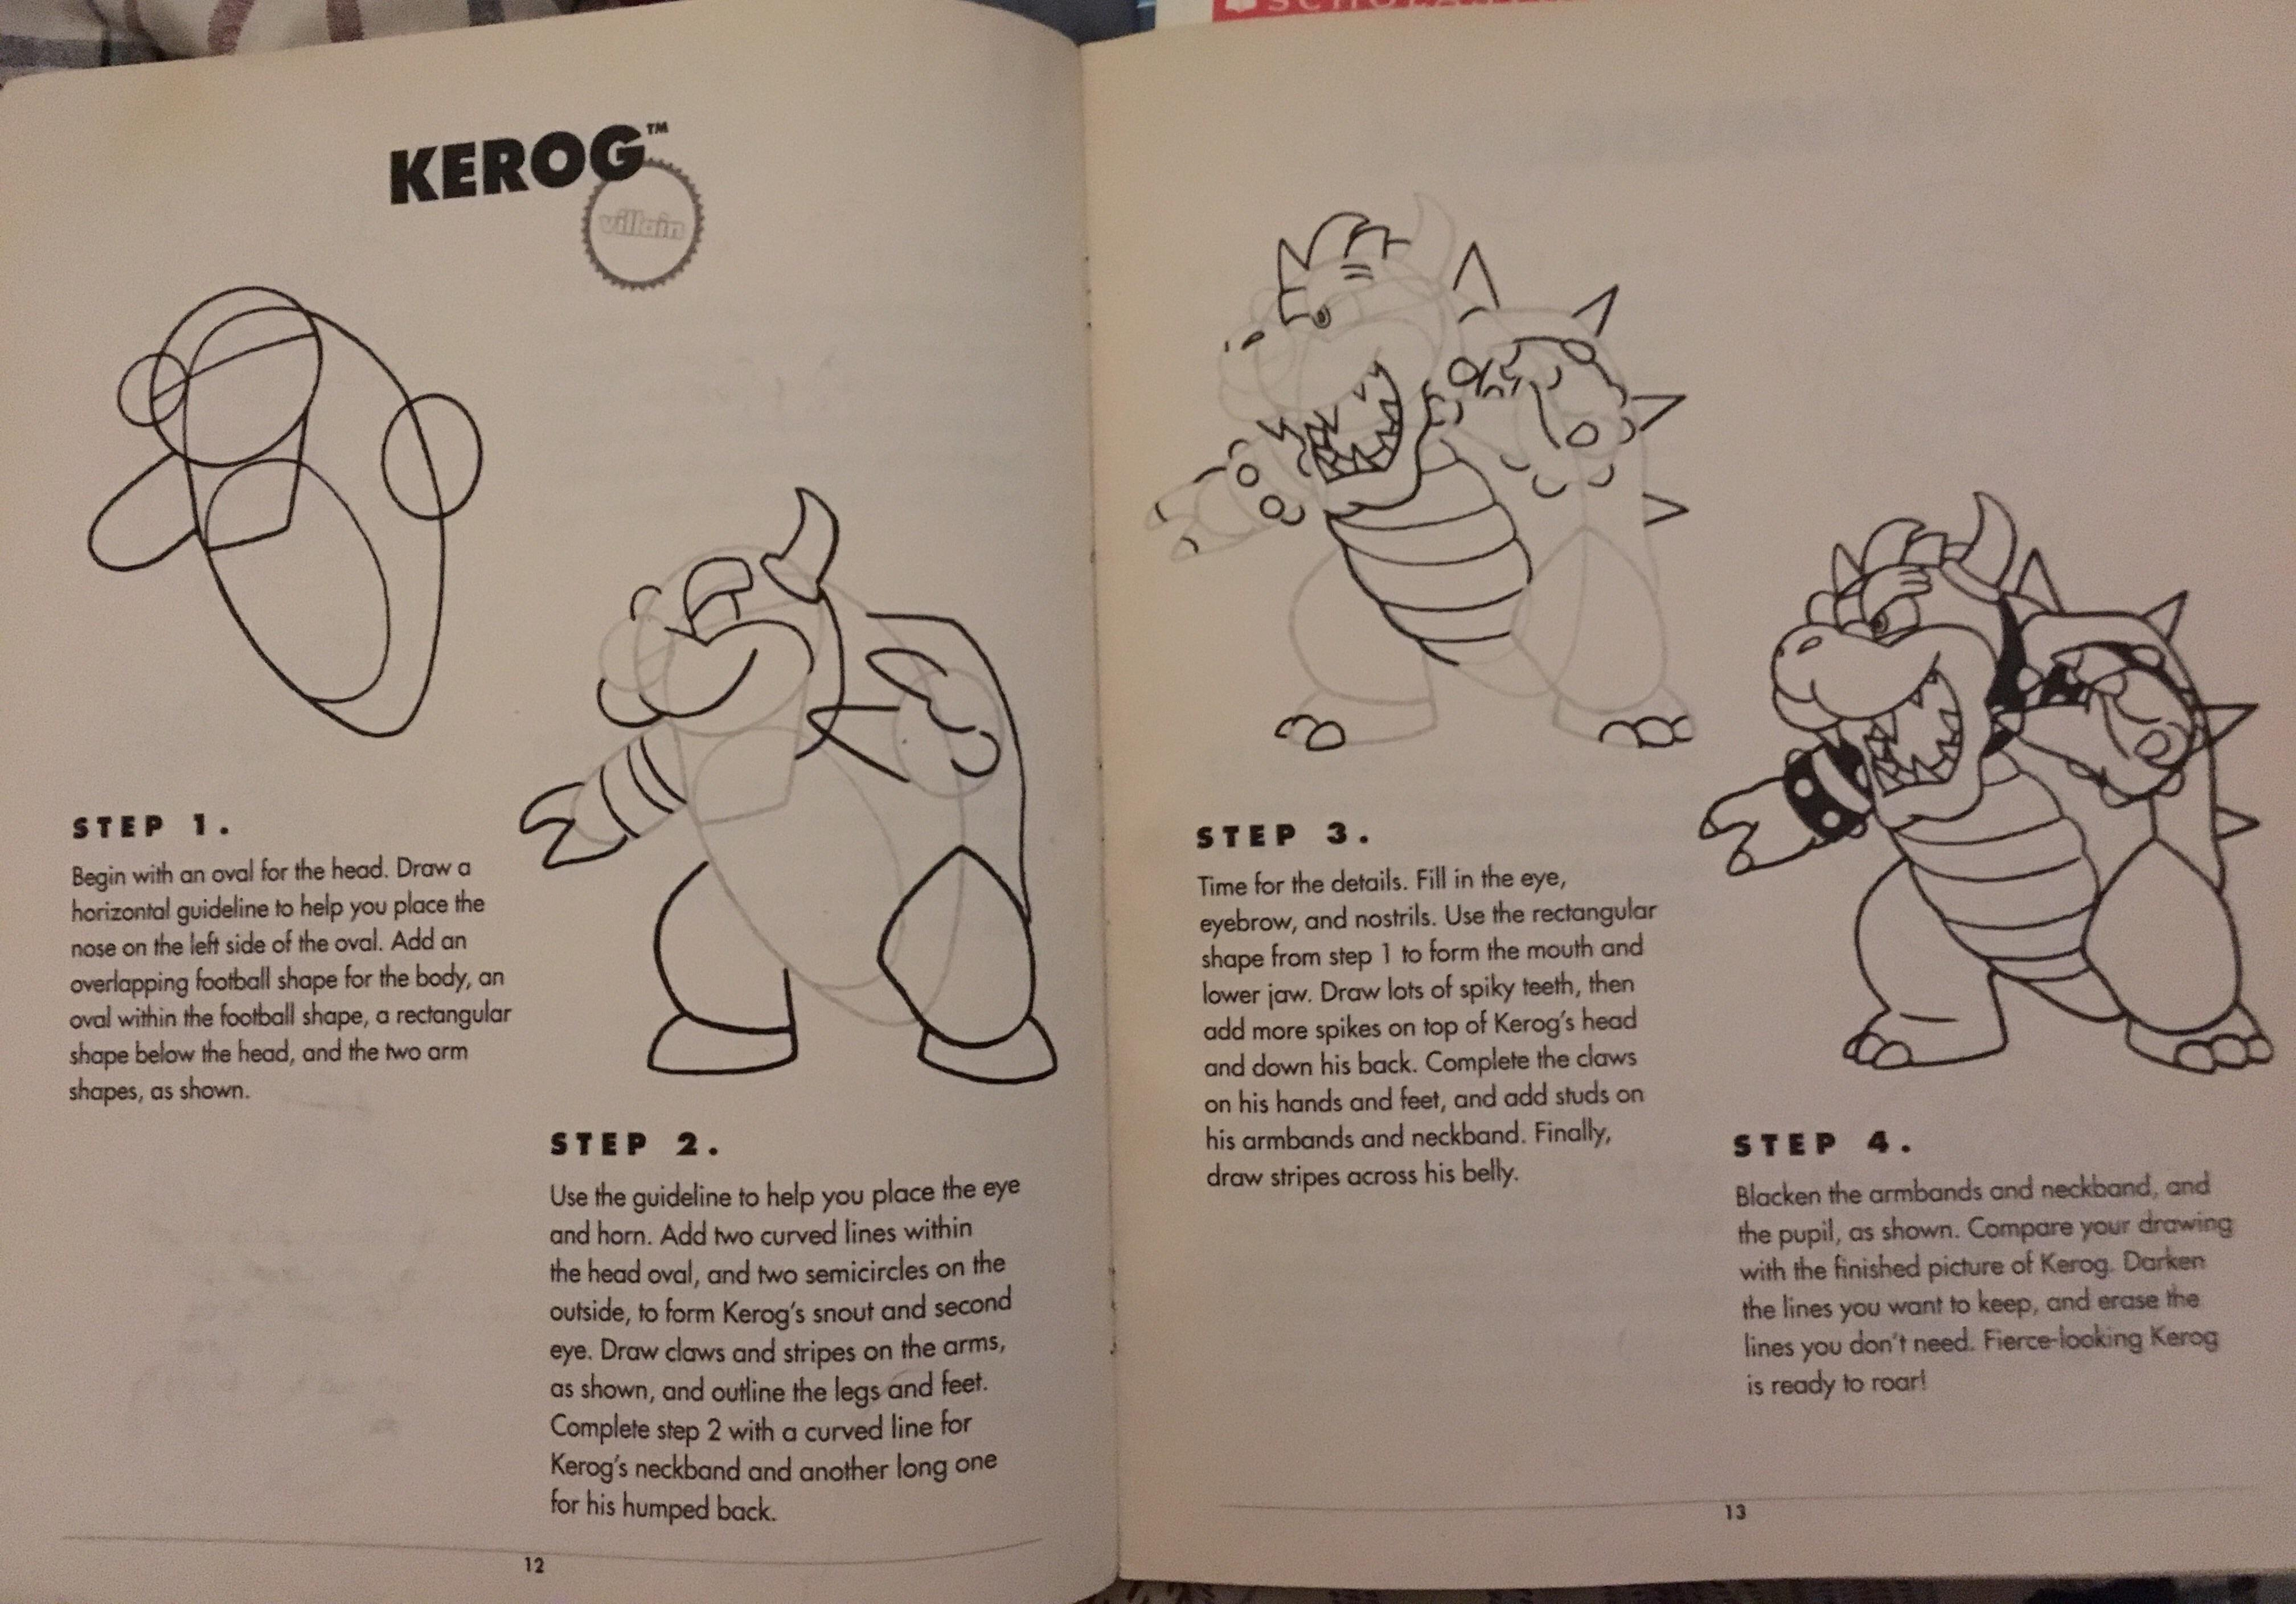 This Old How To Draw Nintendo Heroes And Villains Book I Got In